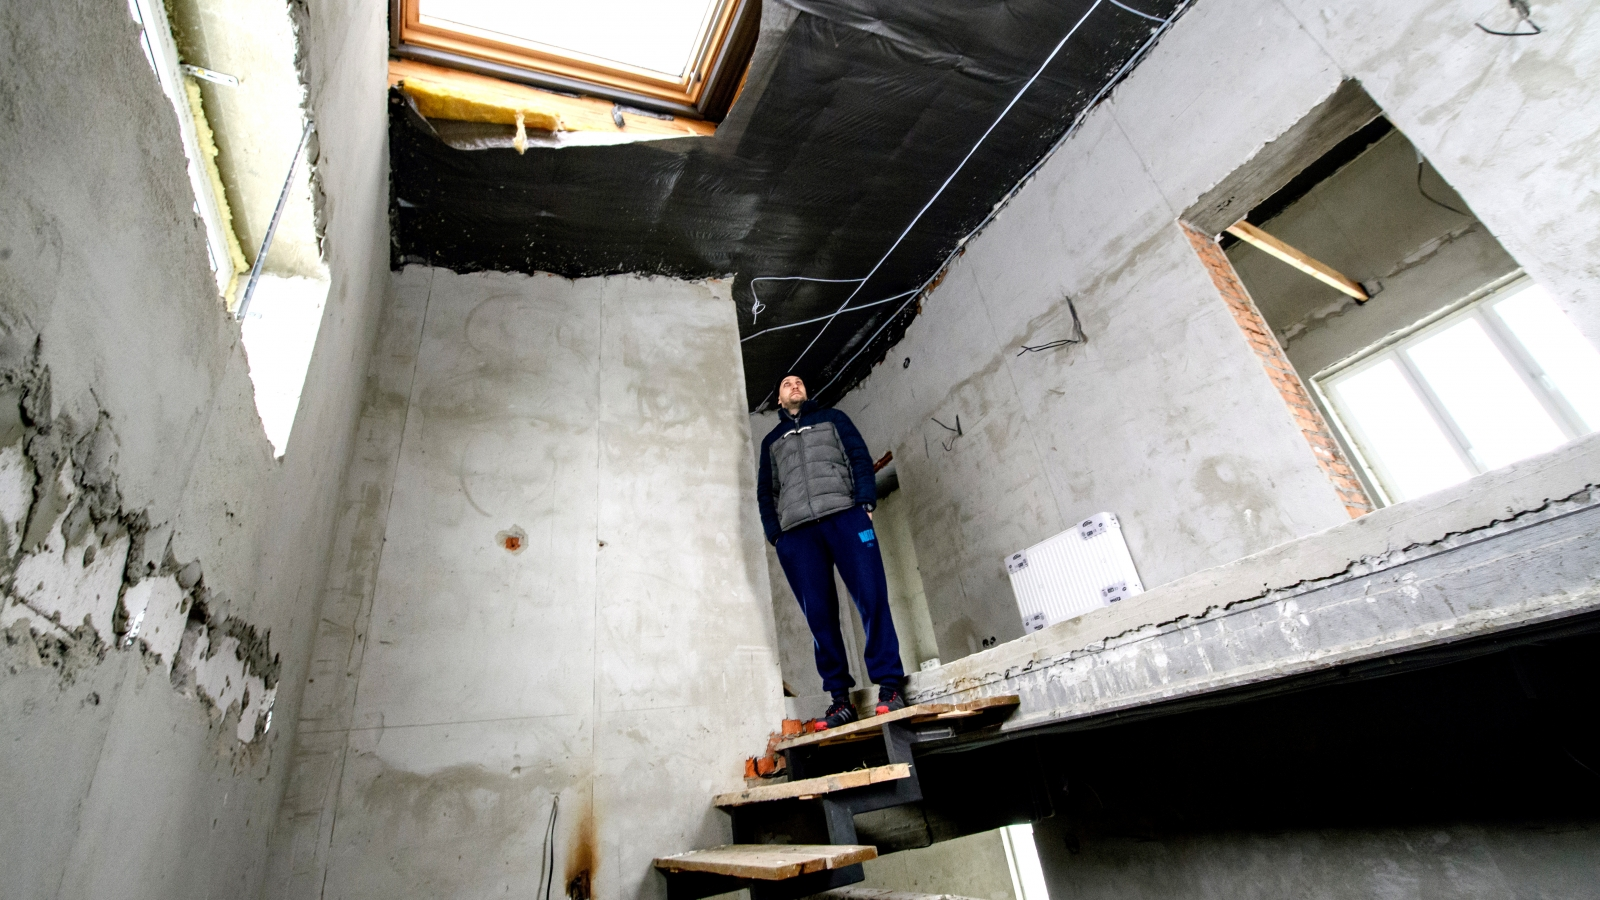 Olexiy Khorosh, a participant of the IQ energy programme has insulated the roof of his house in Chaiky, Ukraine according to the EU standards.